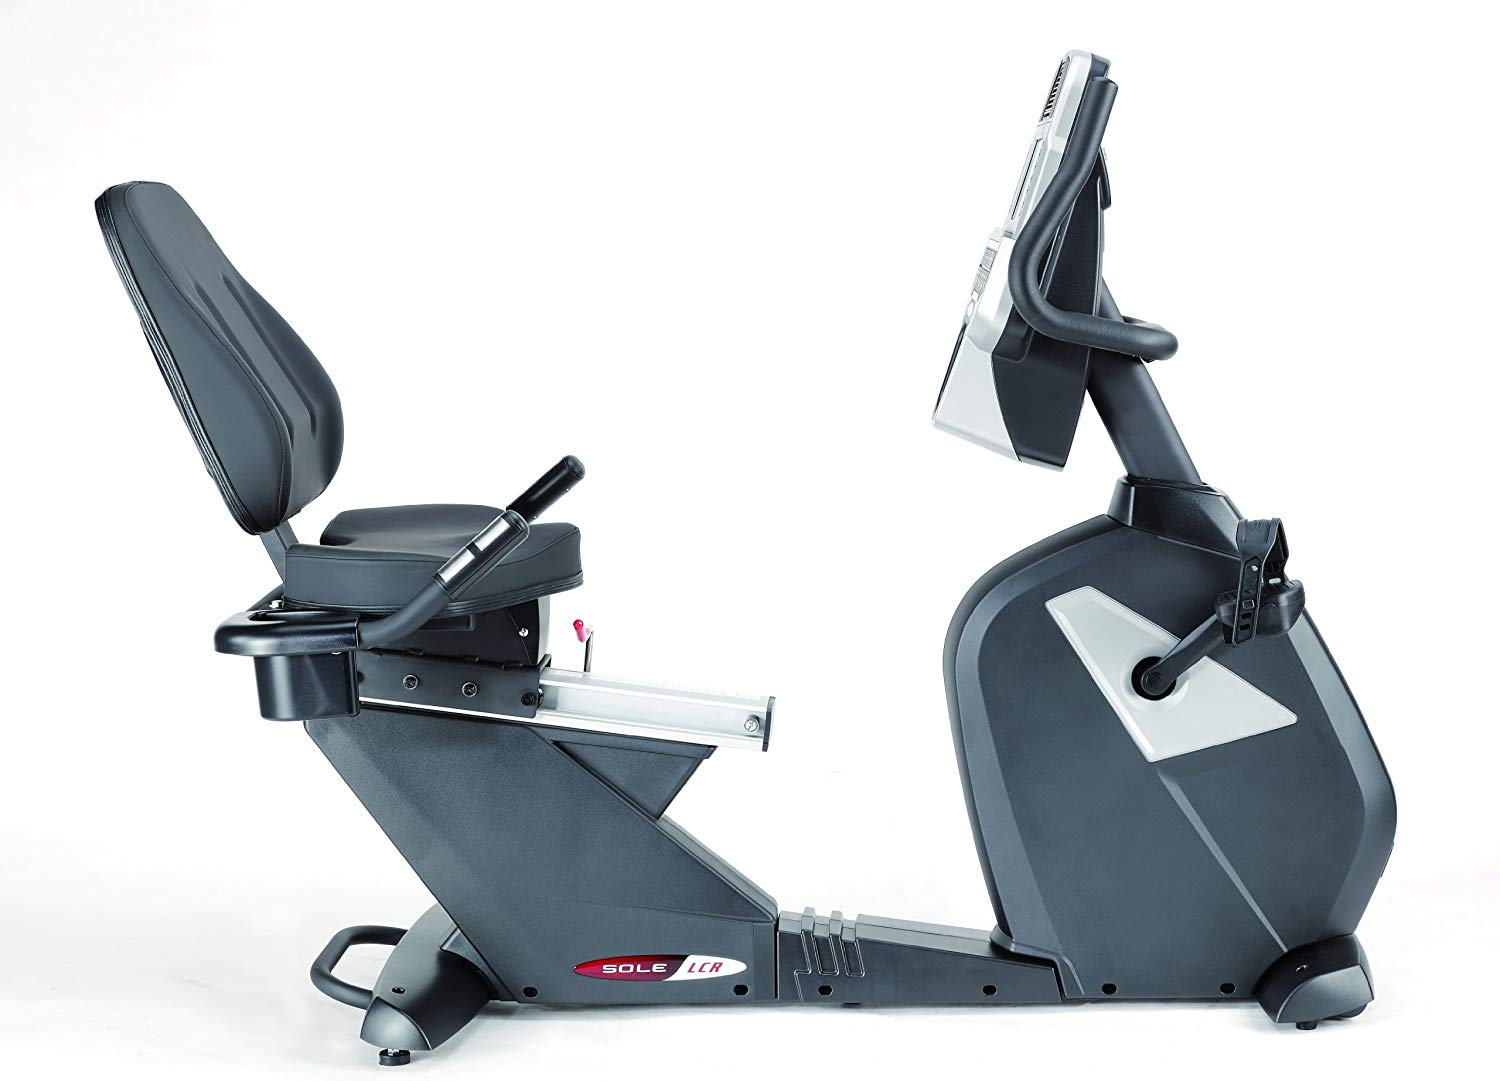 SOLE LCR Exercise Bike